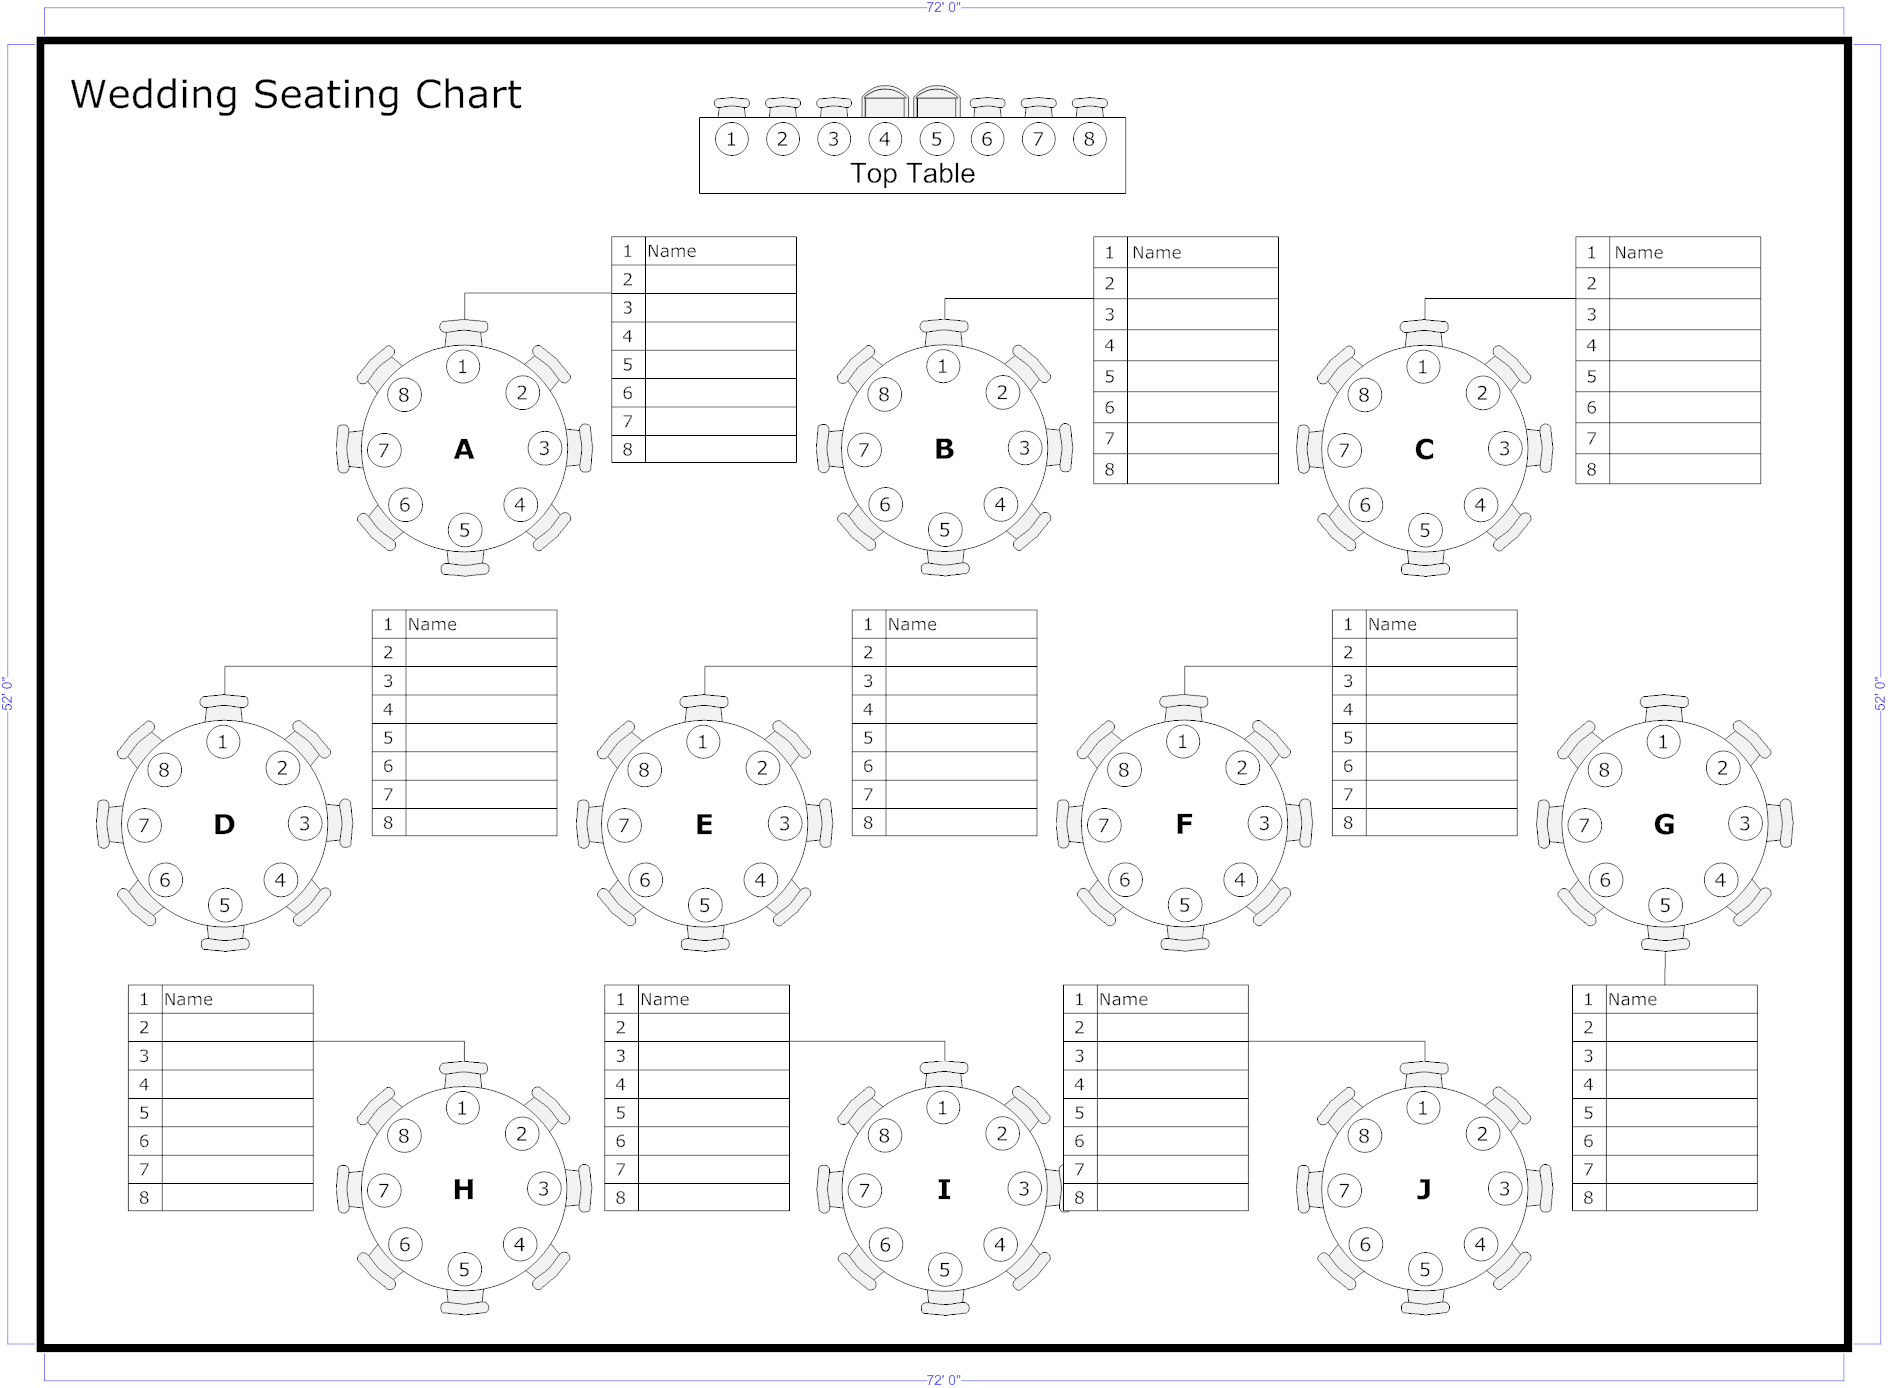 Reception Seating Charts 101 In 2019 | Seating Chart Wedding Intended For Wedding Seating Chart Template Word